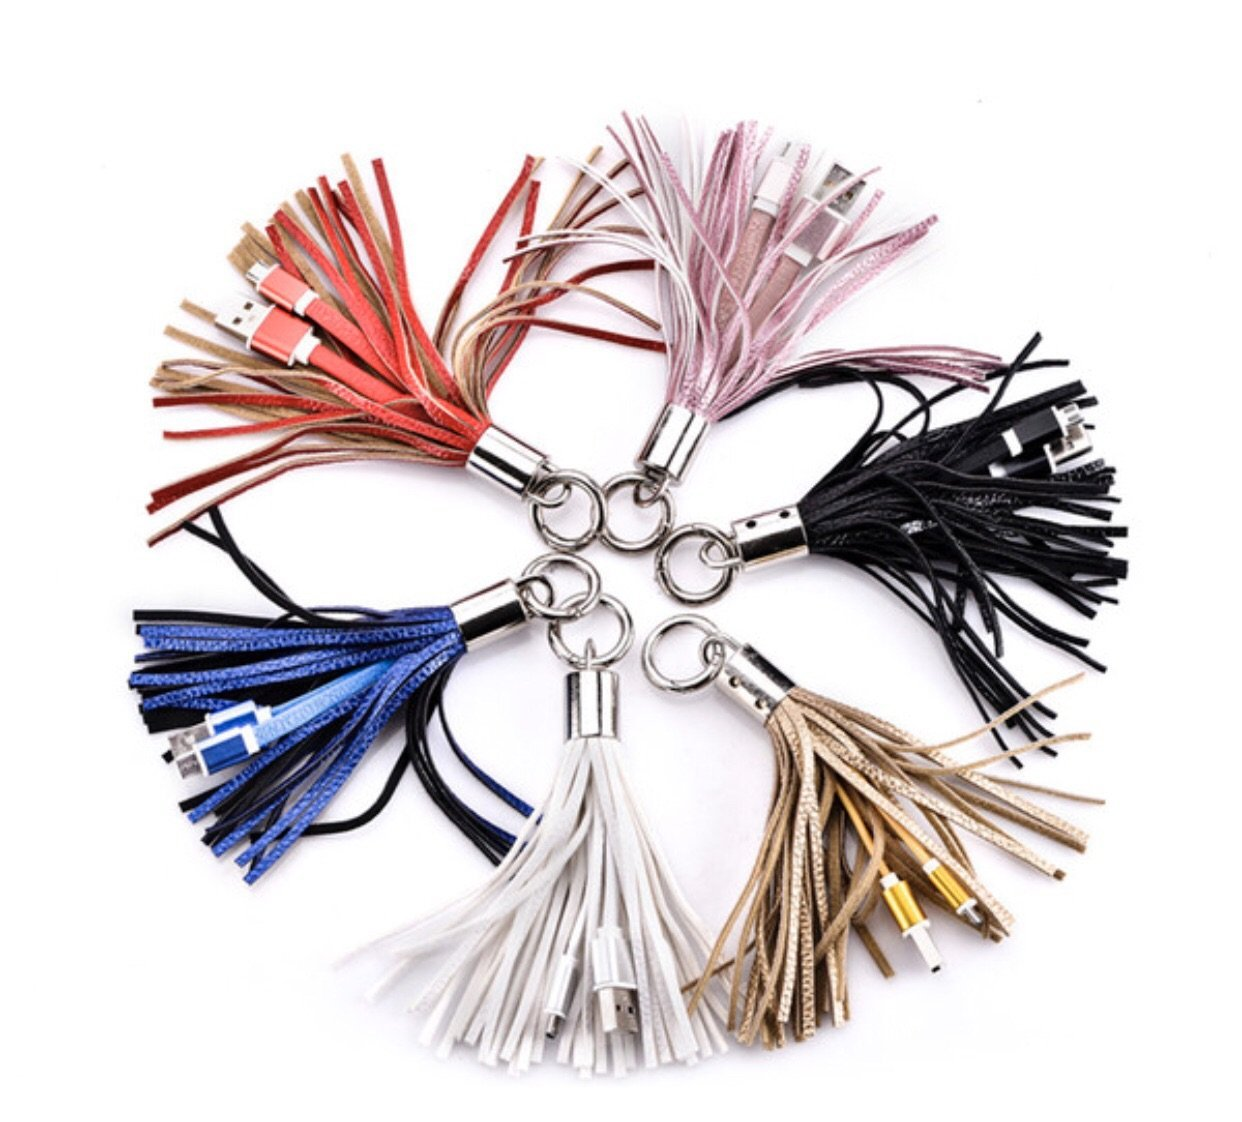 Tassel Key Chain with Charging Cable for iPhones